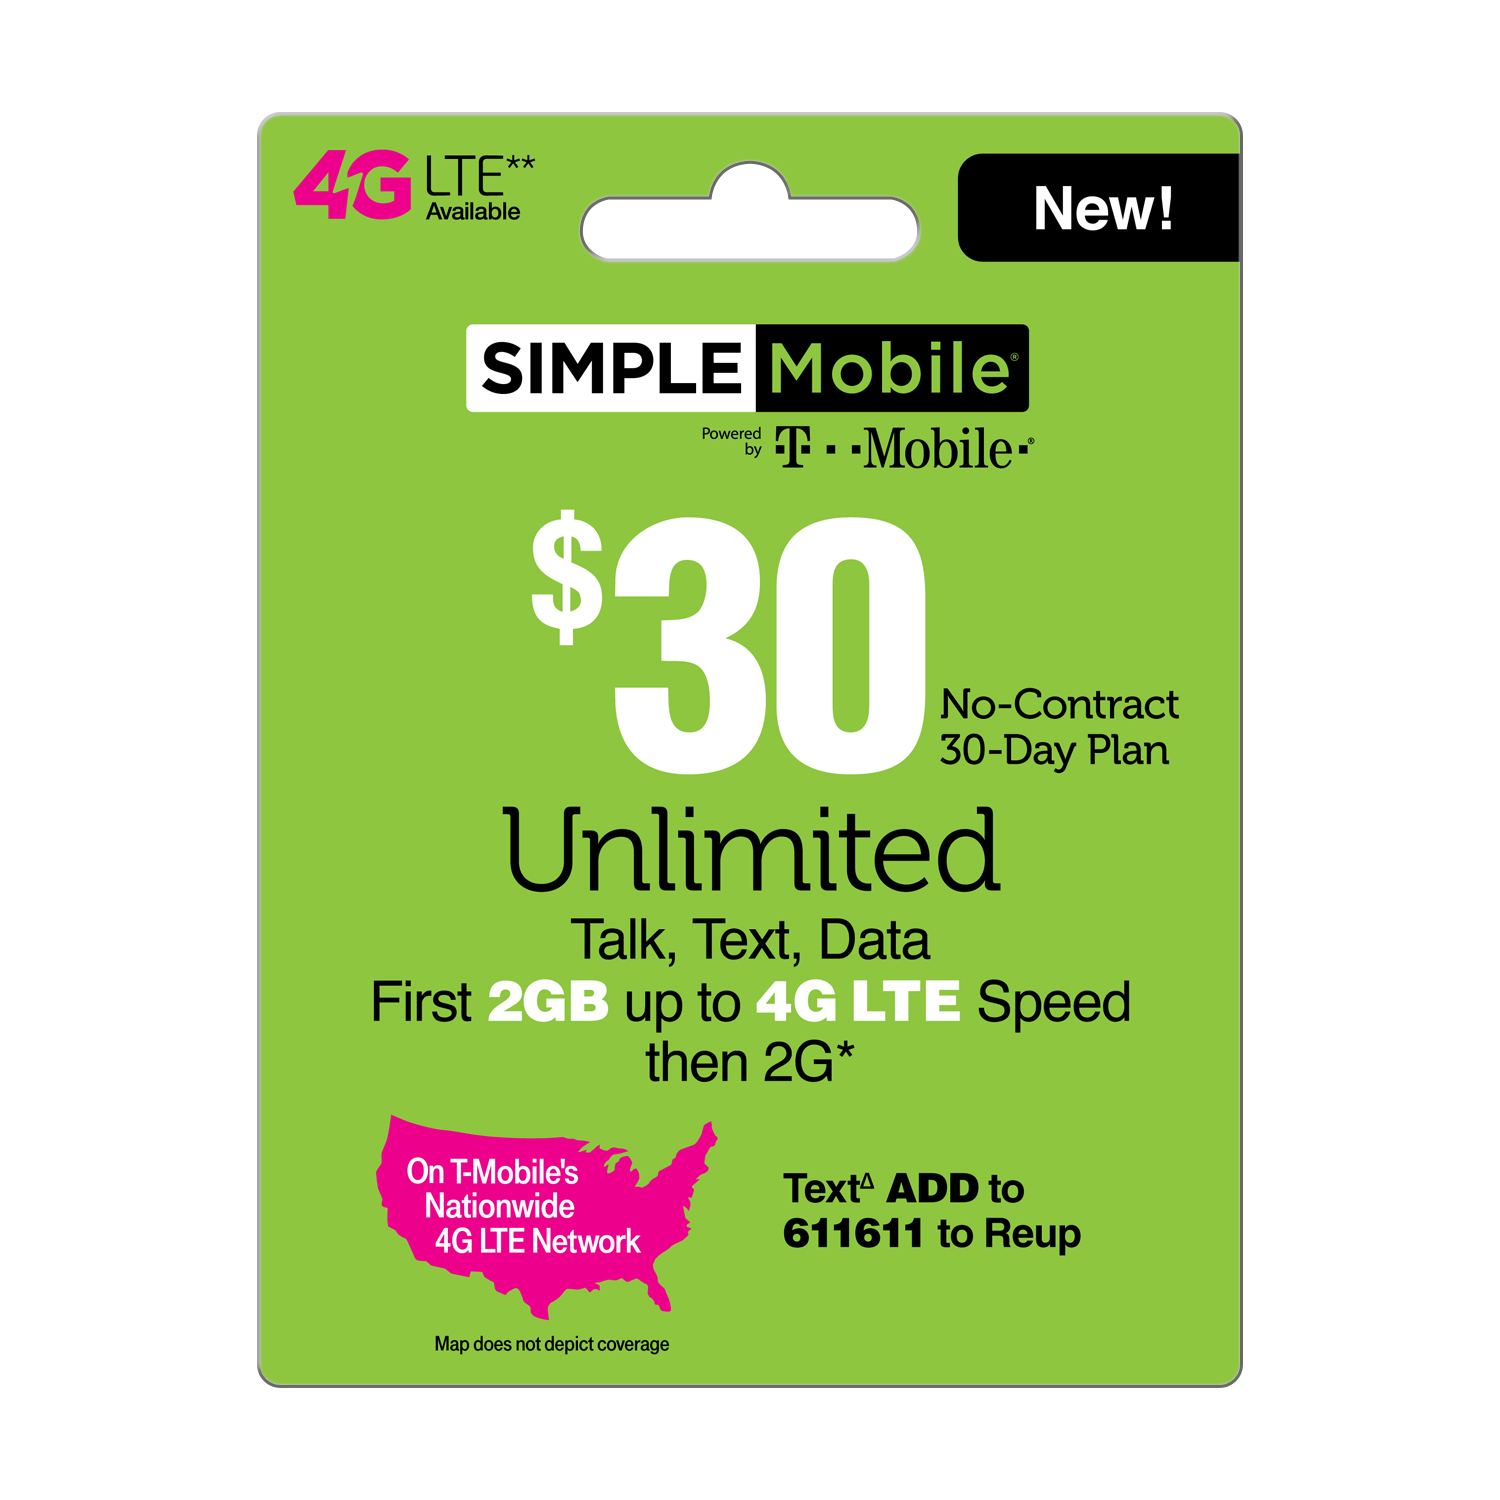 Simple Mobile $30 Unlimited Talk, Text and Data (First 2GB up to 4G LTE† then 2G*) 30-Day Plan (Email Delivery)